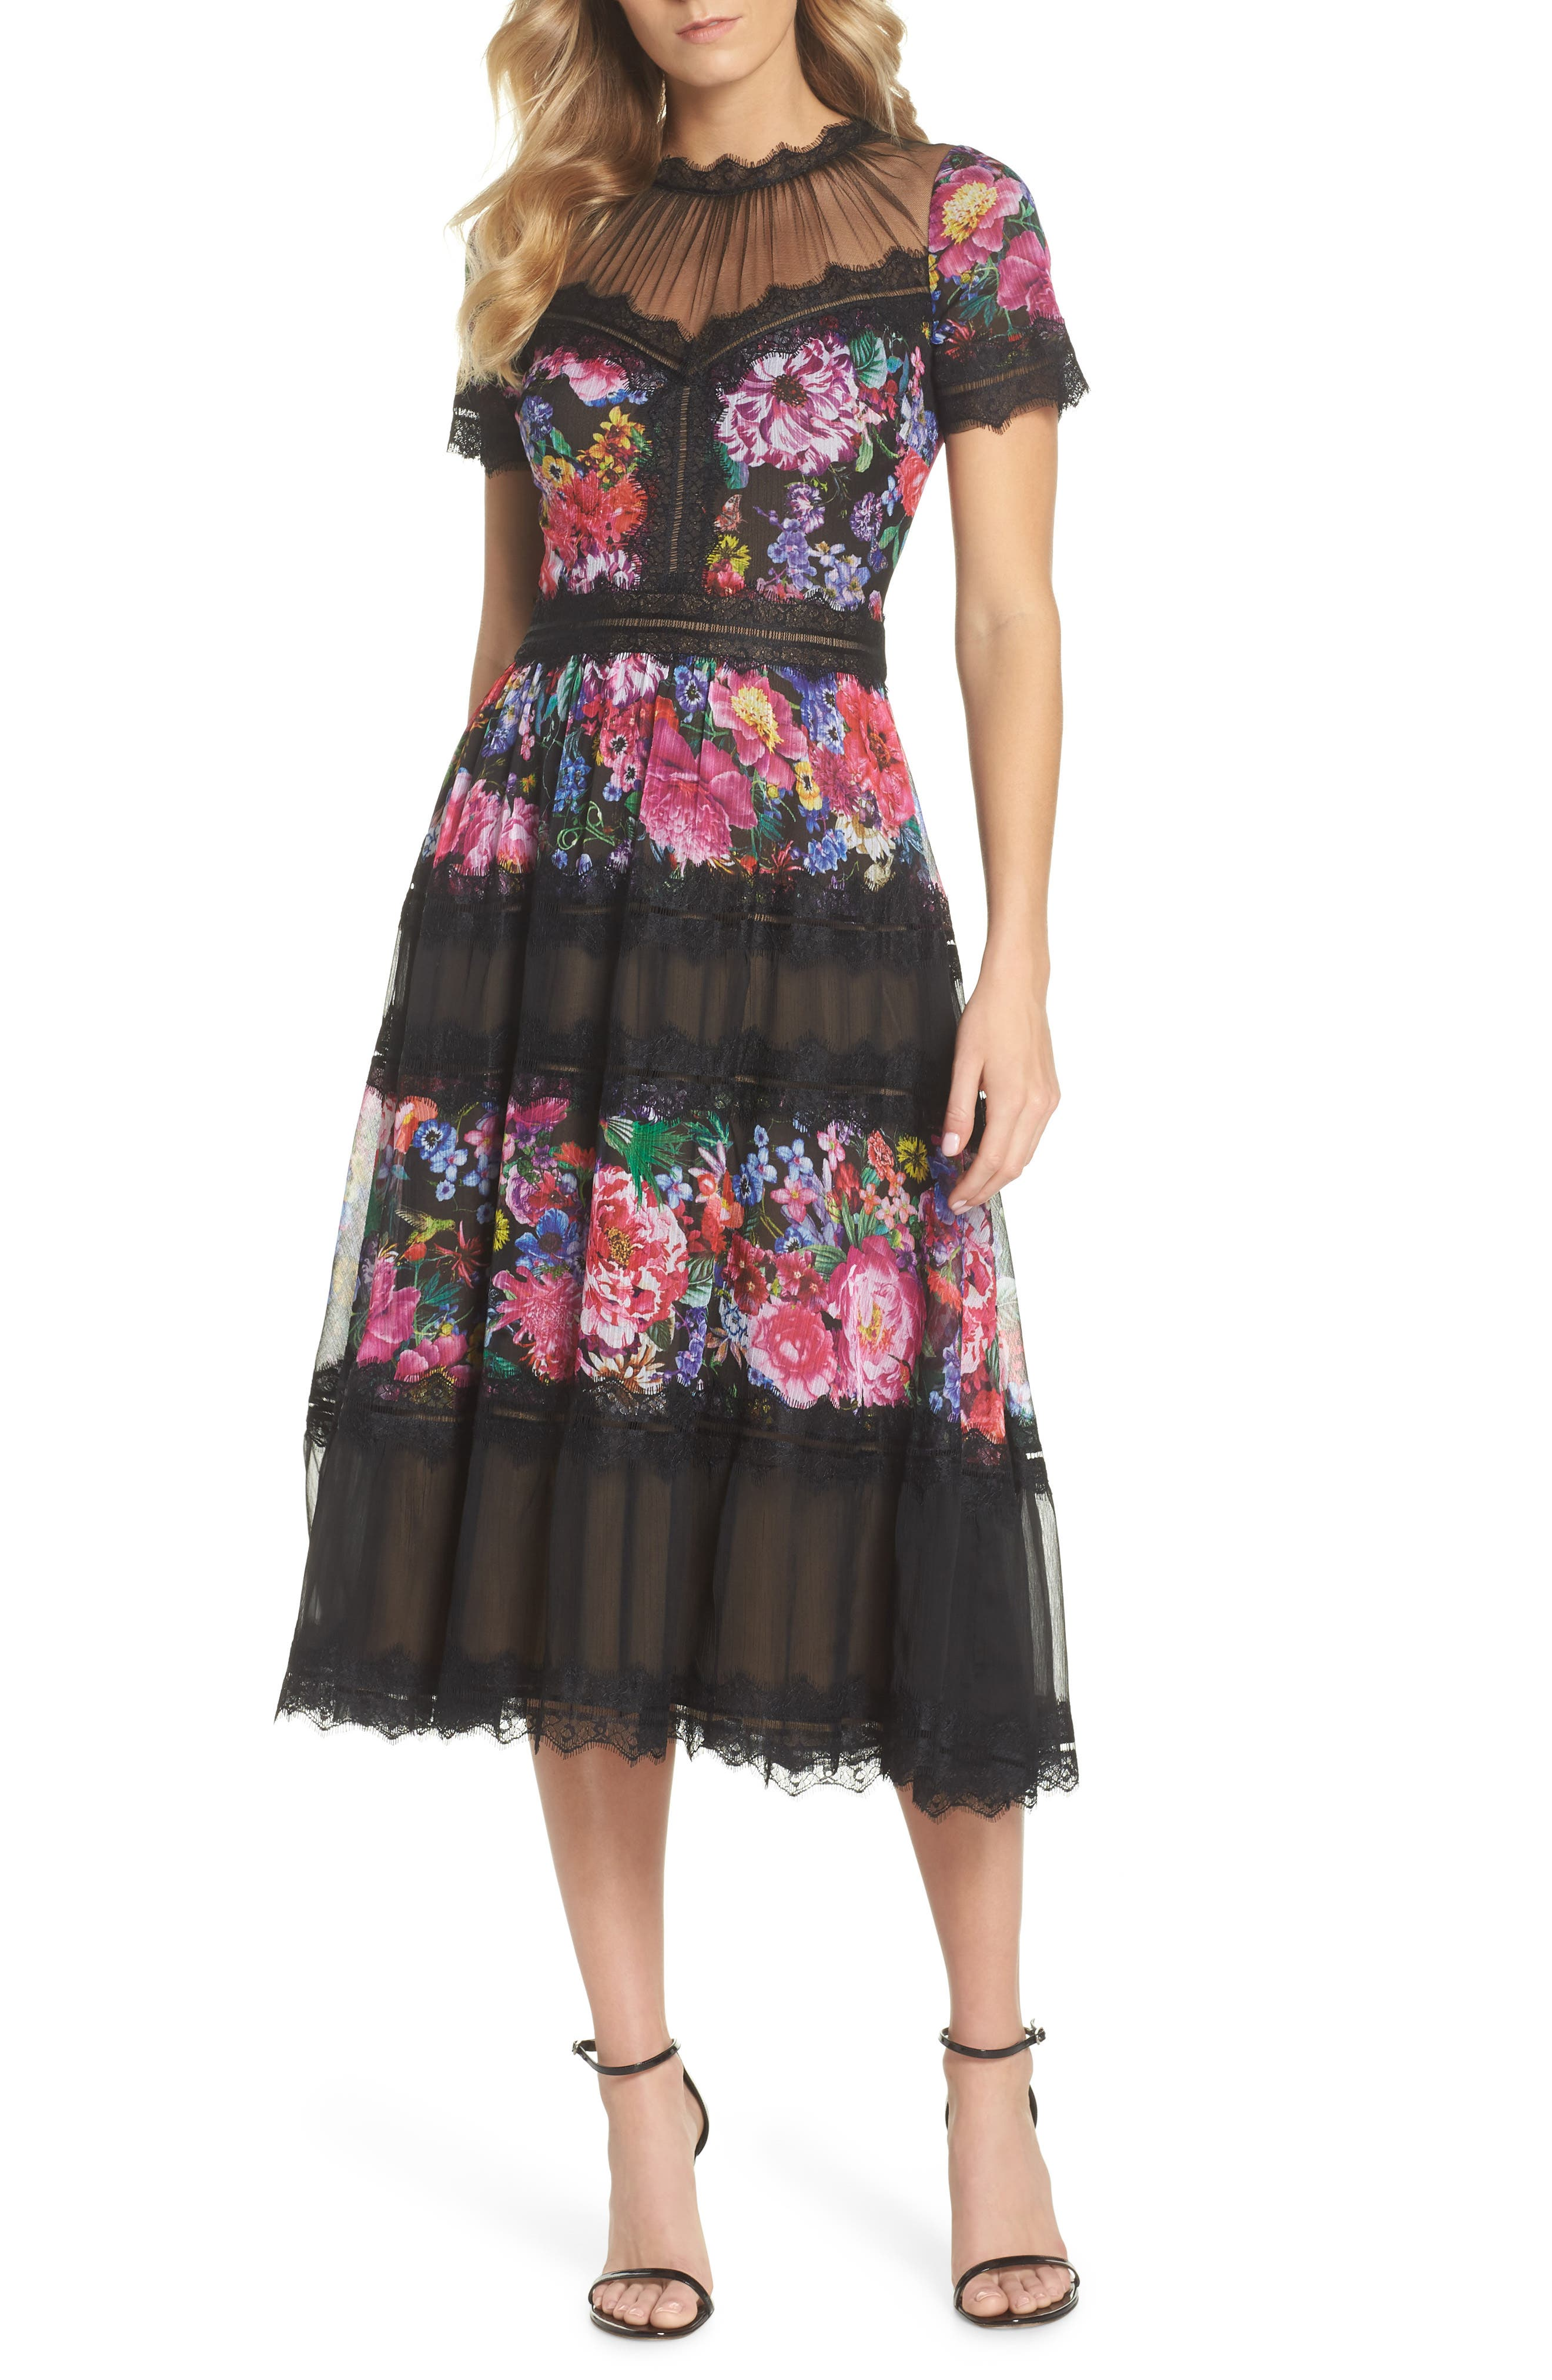 Lace Floral Midi Dress,                         Main,                         color, Black/ Floral